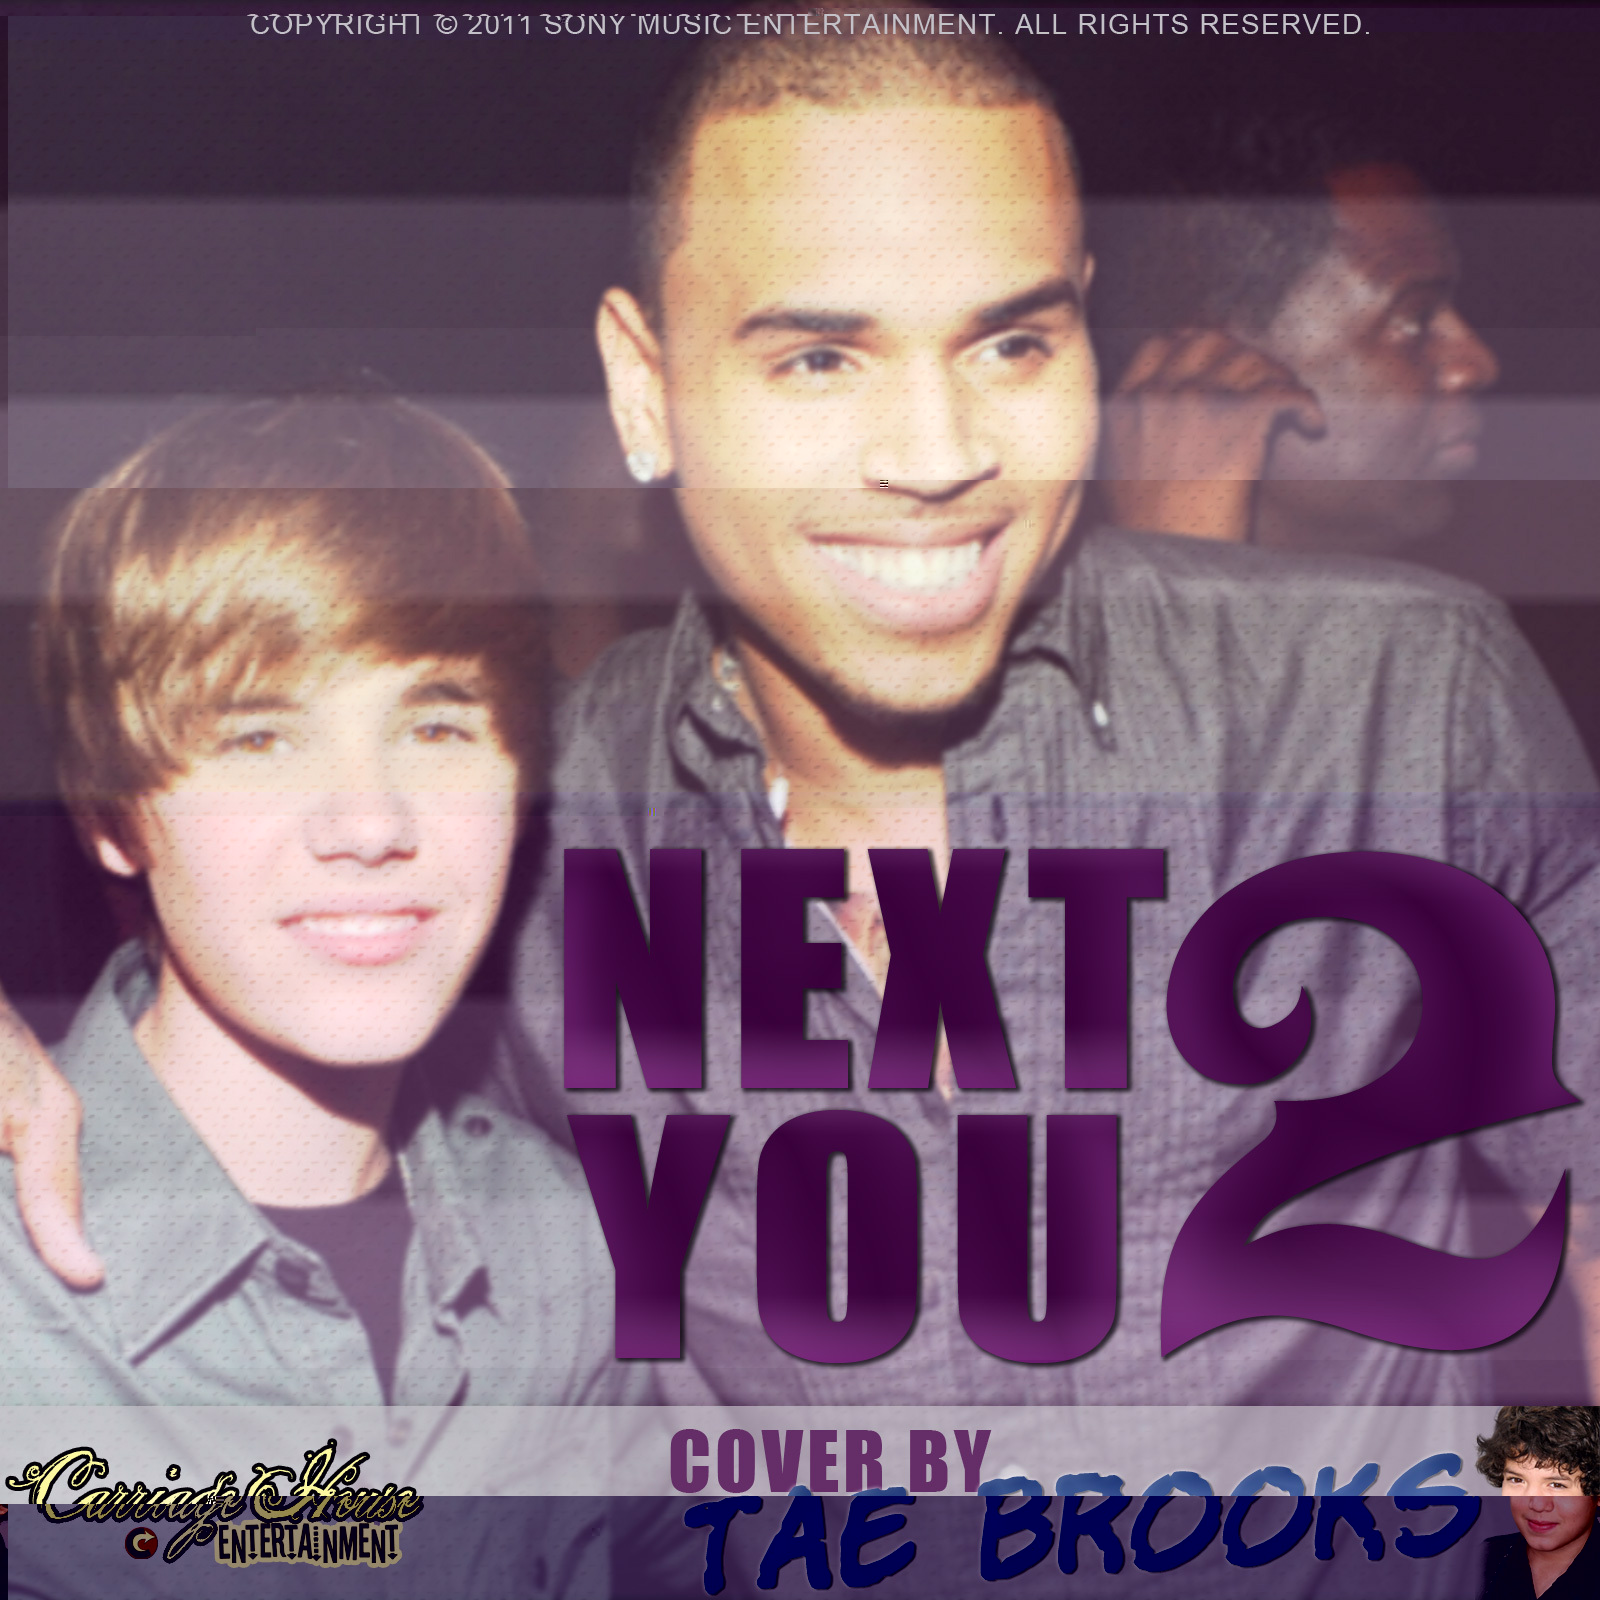 http://2.bp.blogspot.com/-UmyP8FSmOCs/T7h7JUE2KII/AAAAAAAADlQ/C2Ei3WF7iEo/s1600/Chris-Brown-ft-Justin-Bieber-Next-2-You-Next-To-You-Cover-by-Tae-Brooks-chris-brown-20109744-1600-1600.jpg